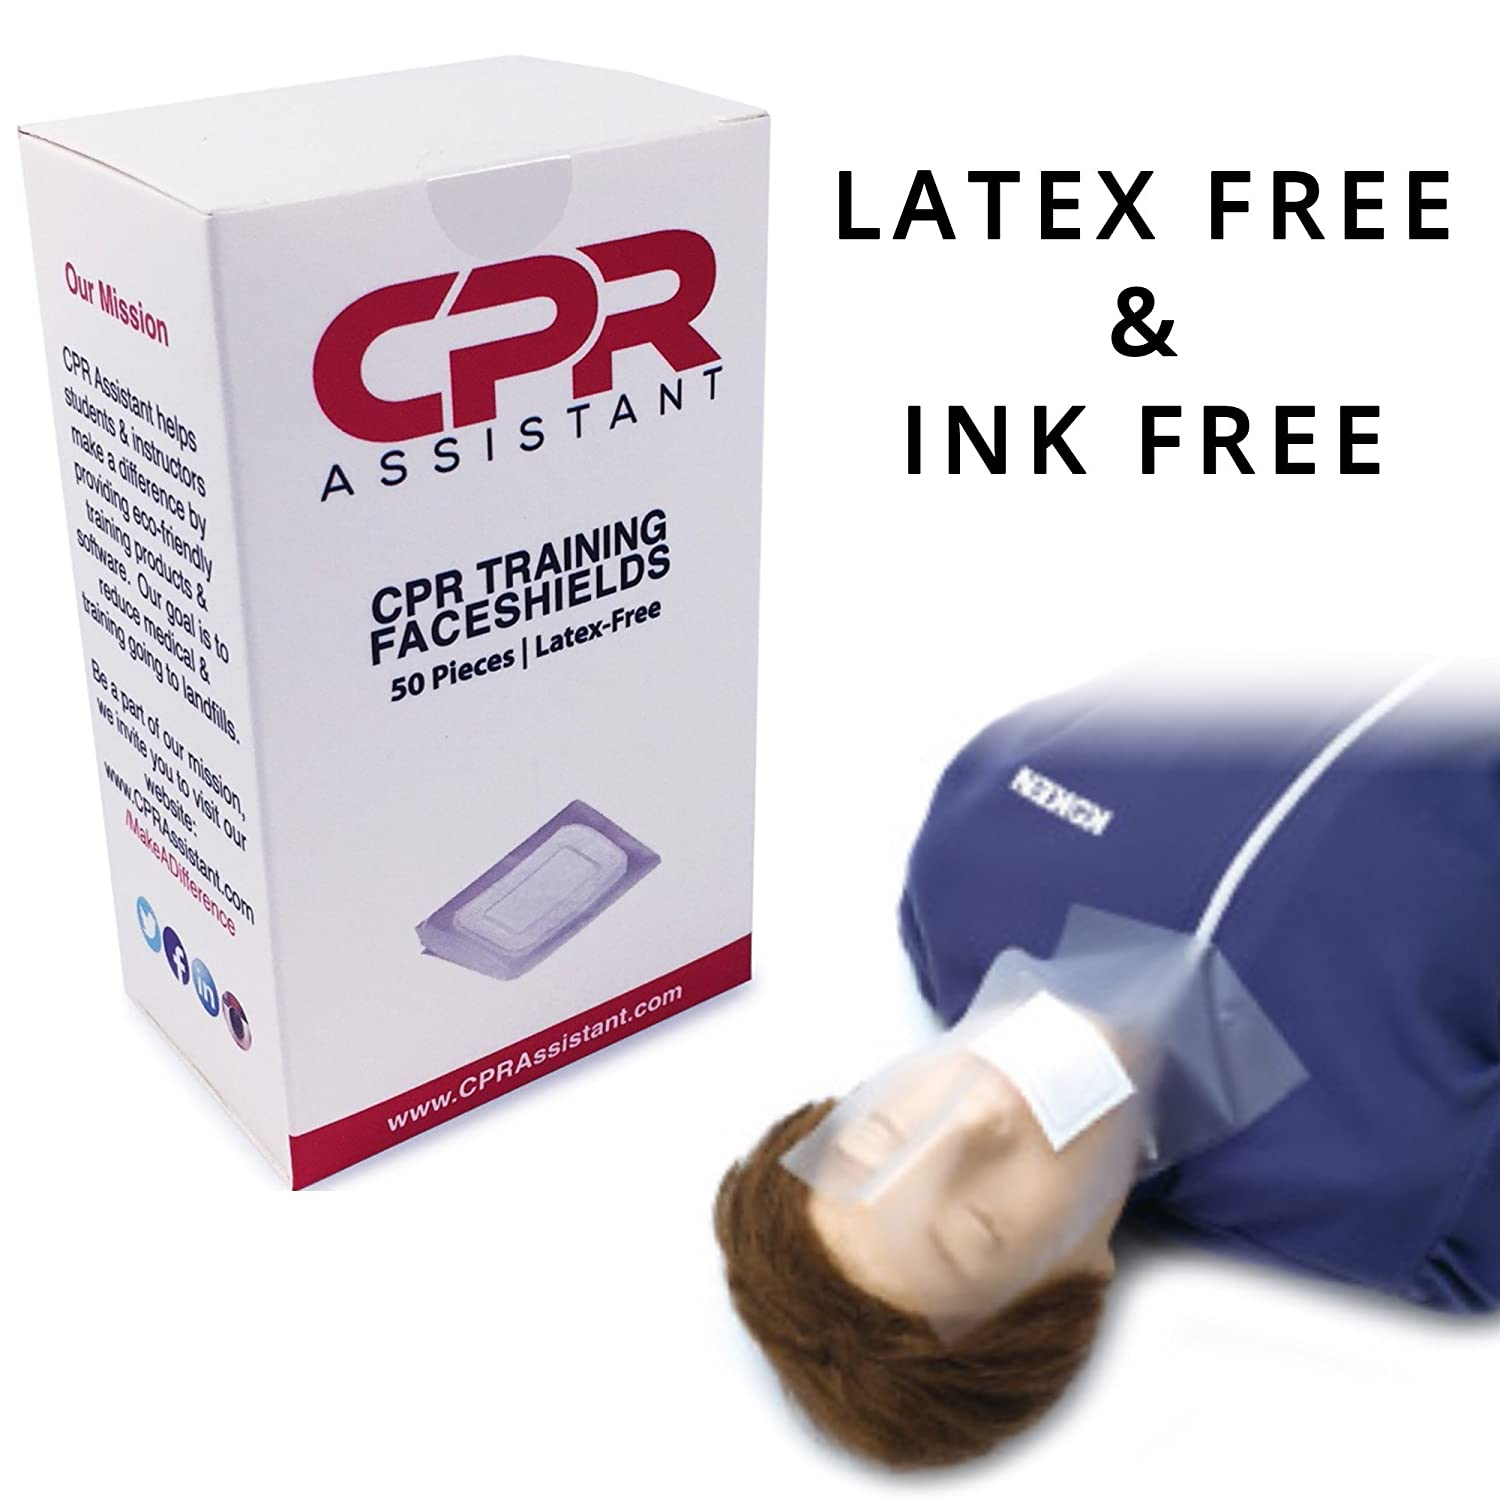 2 Pack Bundle for 100pc Total Latex Free CPR Training Faceshield for CPR First Aid Practice Manikin CPR Assistant